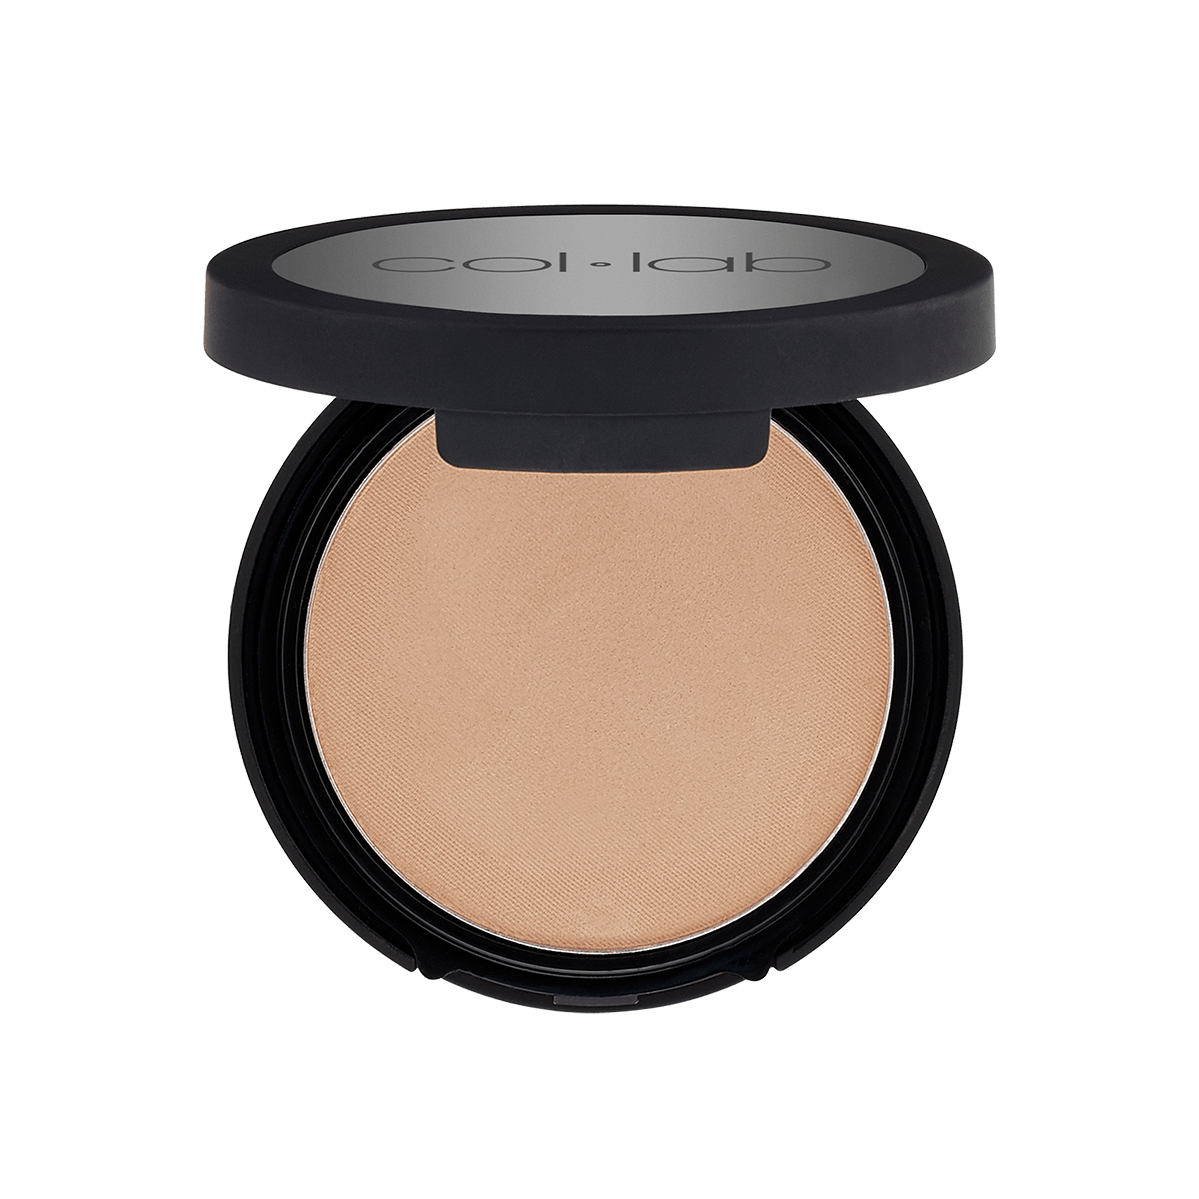 collab-kill-the-shine-pressed-powder-ivorysand-open1.png